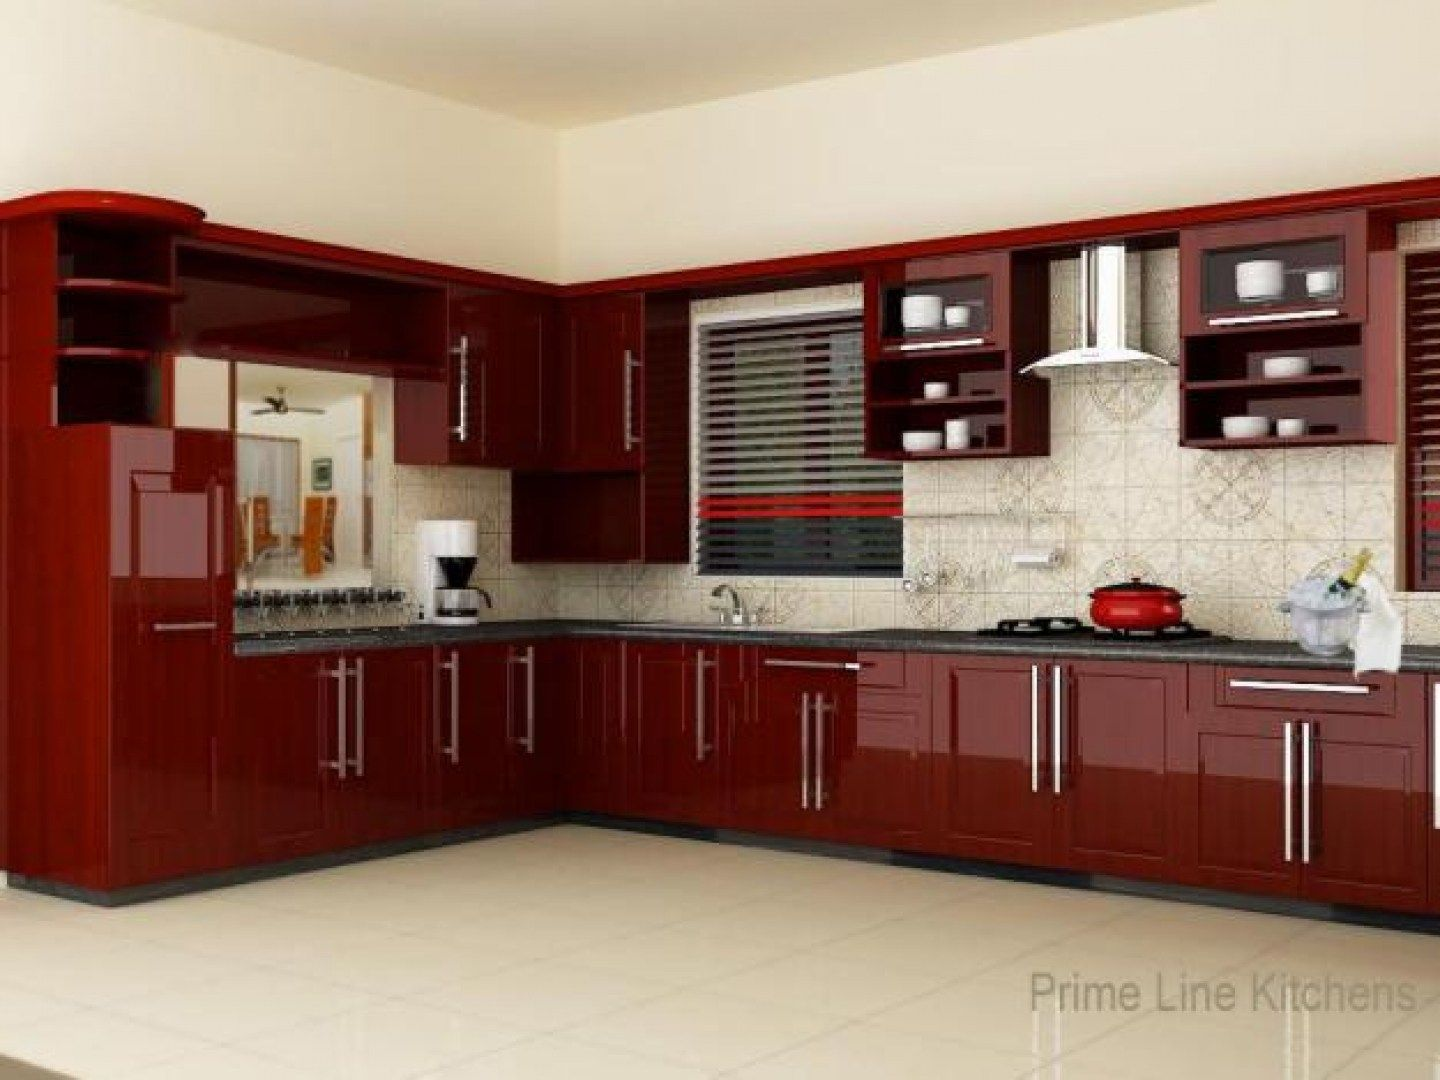 Kitchen design ideas kitchen woodwork designs hyderabad for Aluminium kitchen cabinets hyderabad